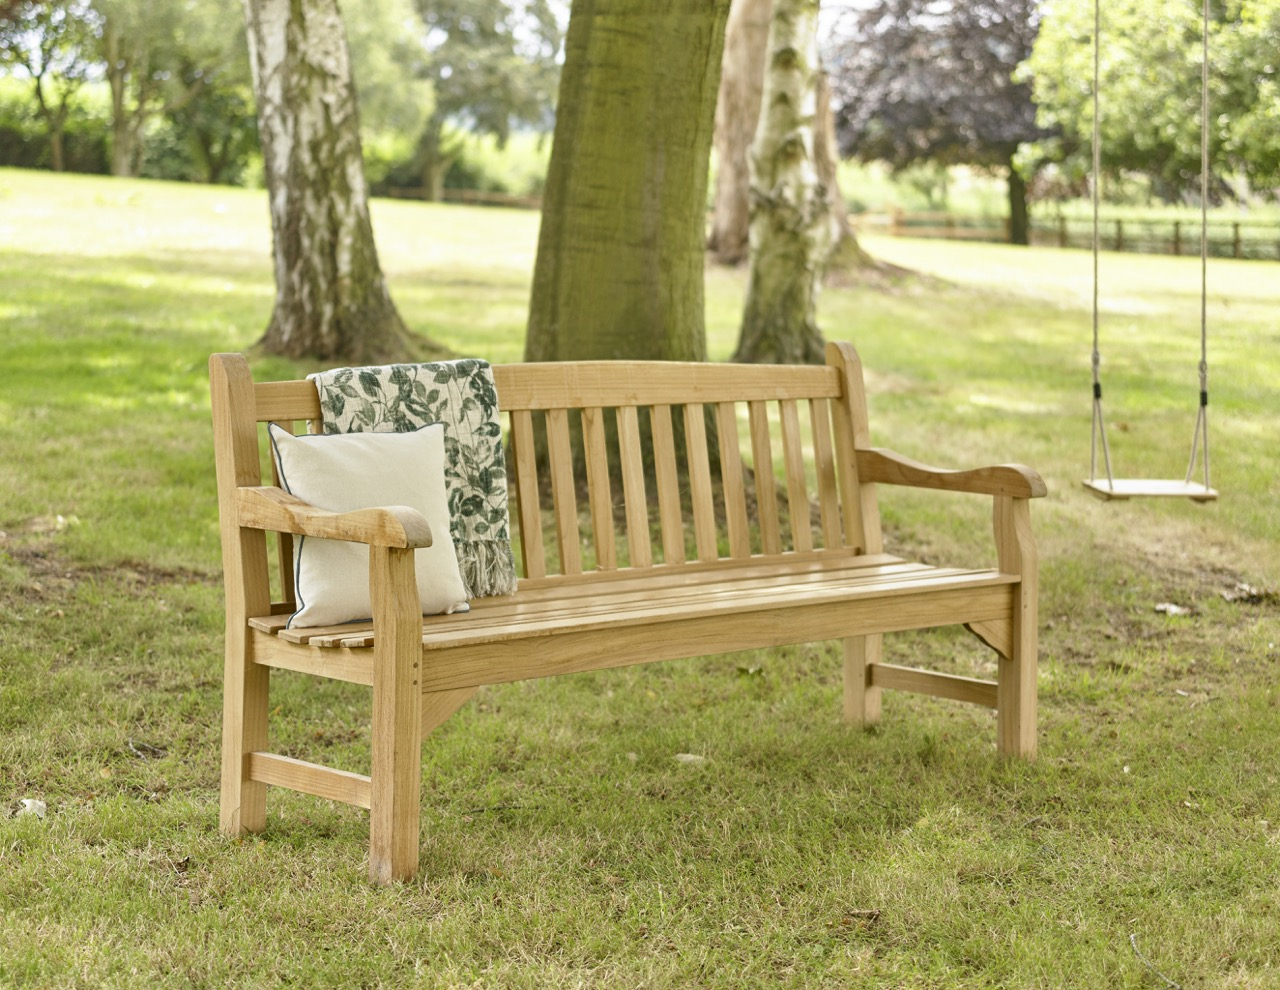 How To Care For Teak Garden Furniture Holloways